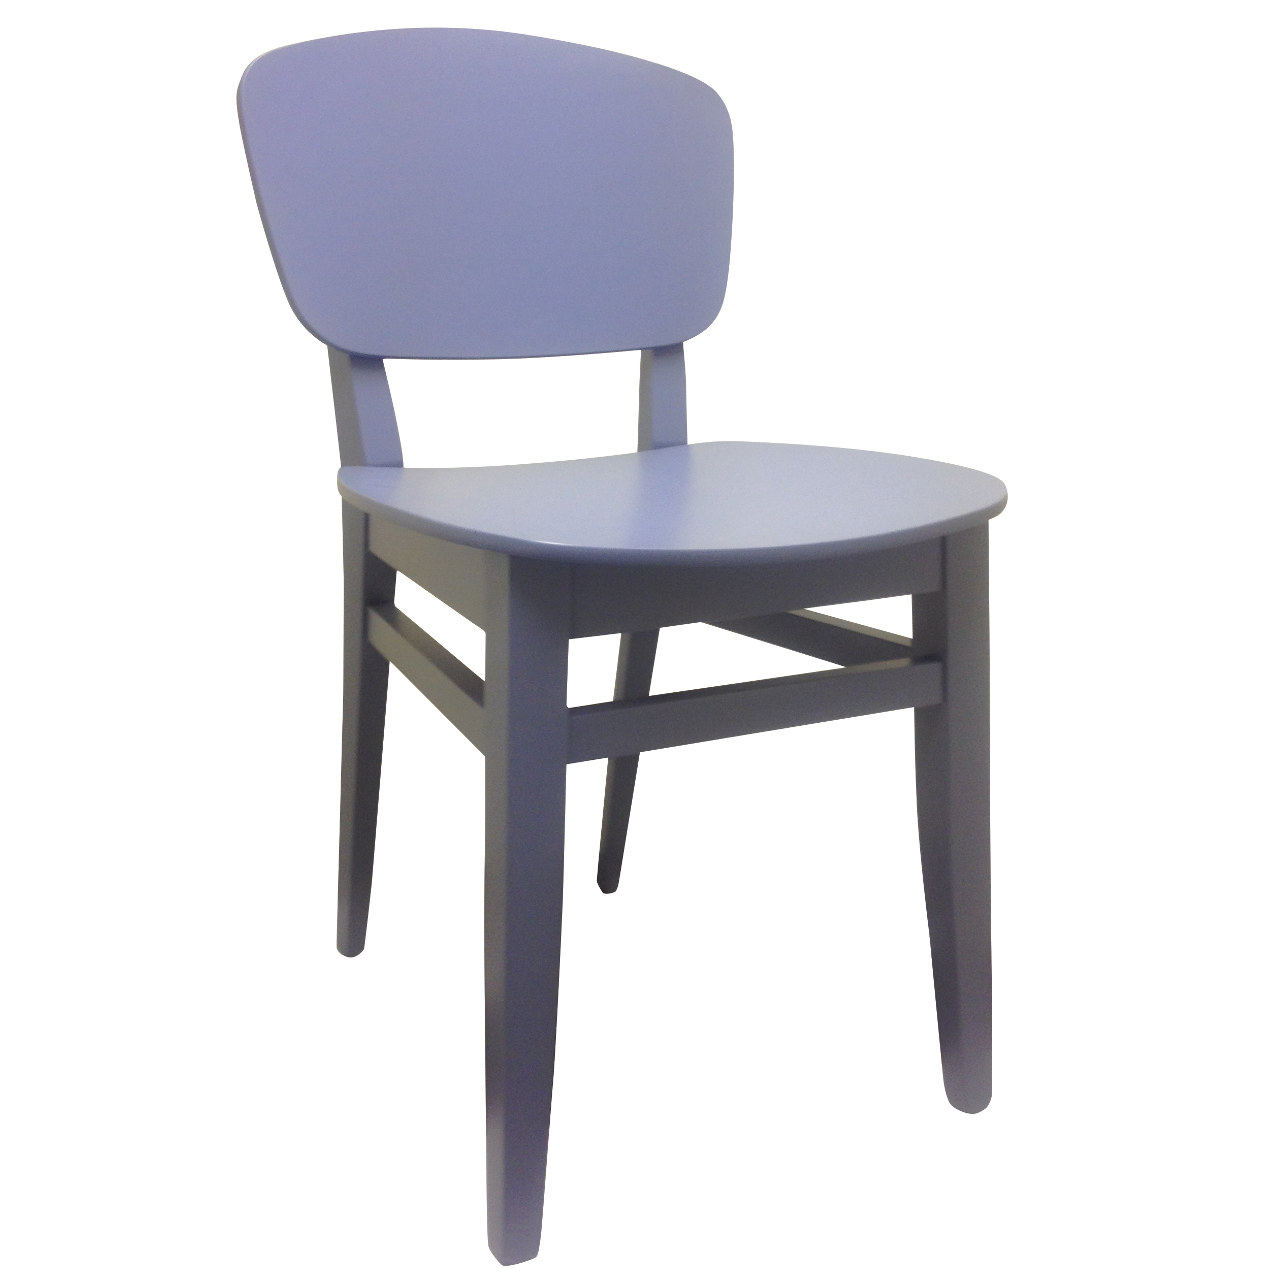 Blue solid chair